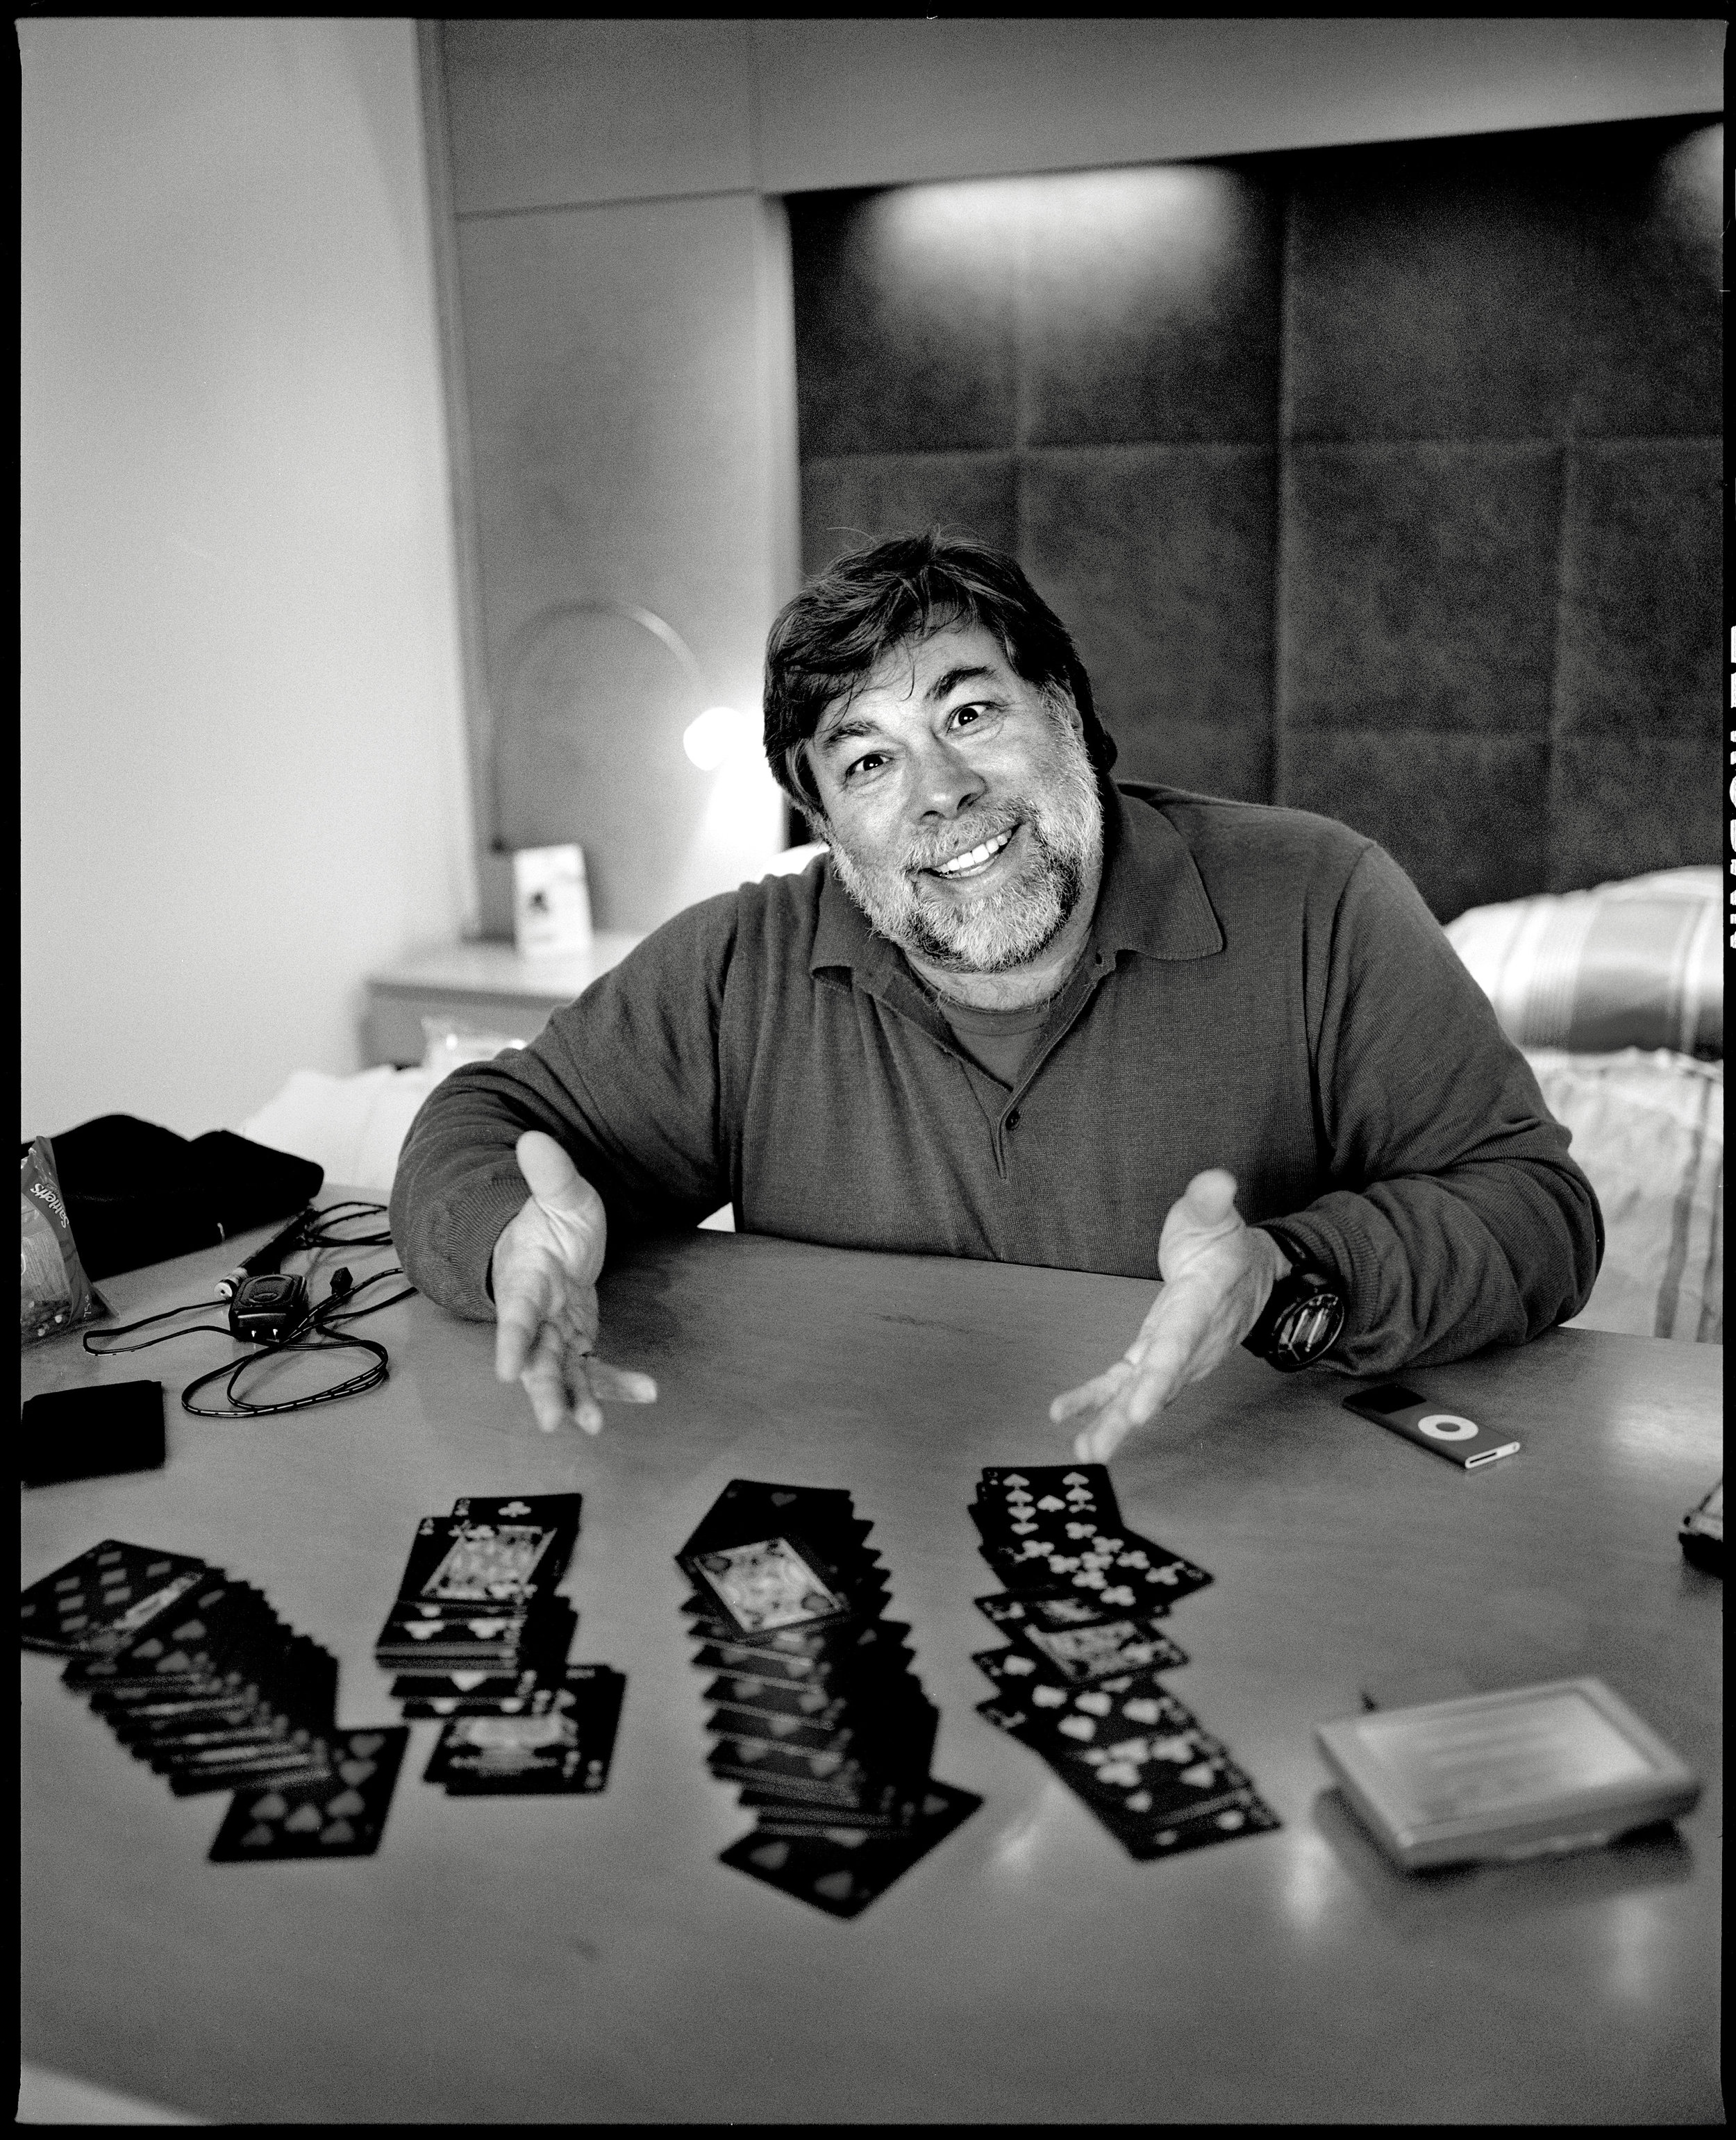 Steve Wozniak - <br>Inventor, Co-Founder of Apple Inc.